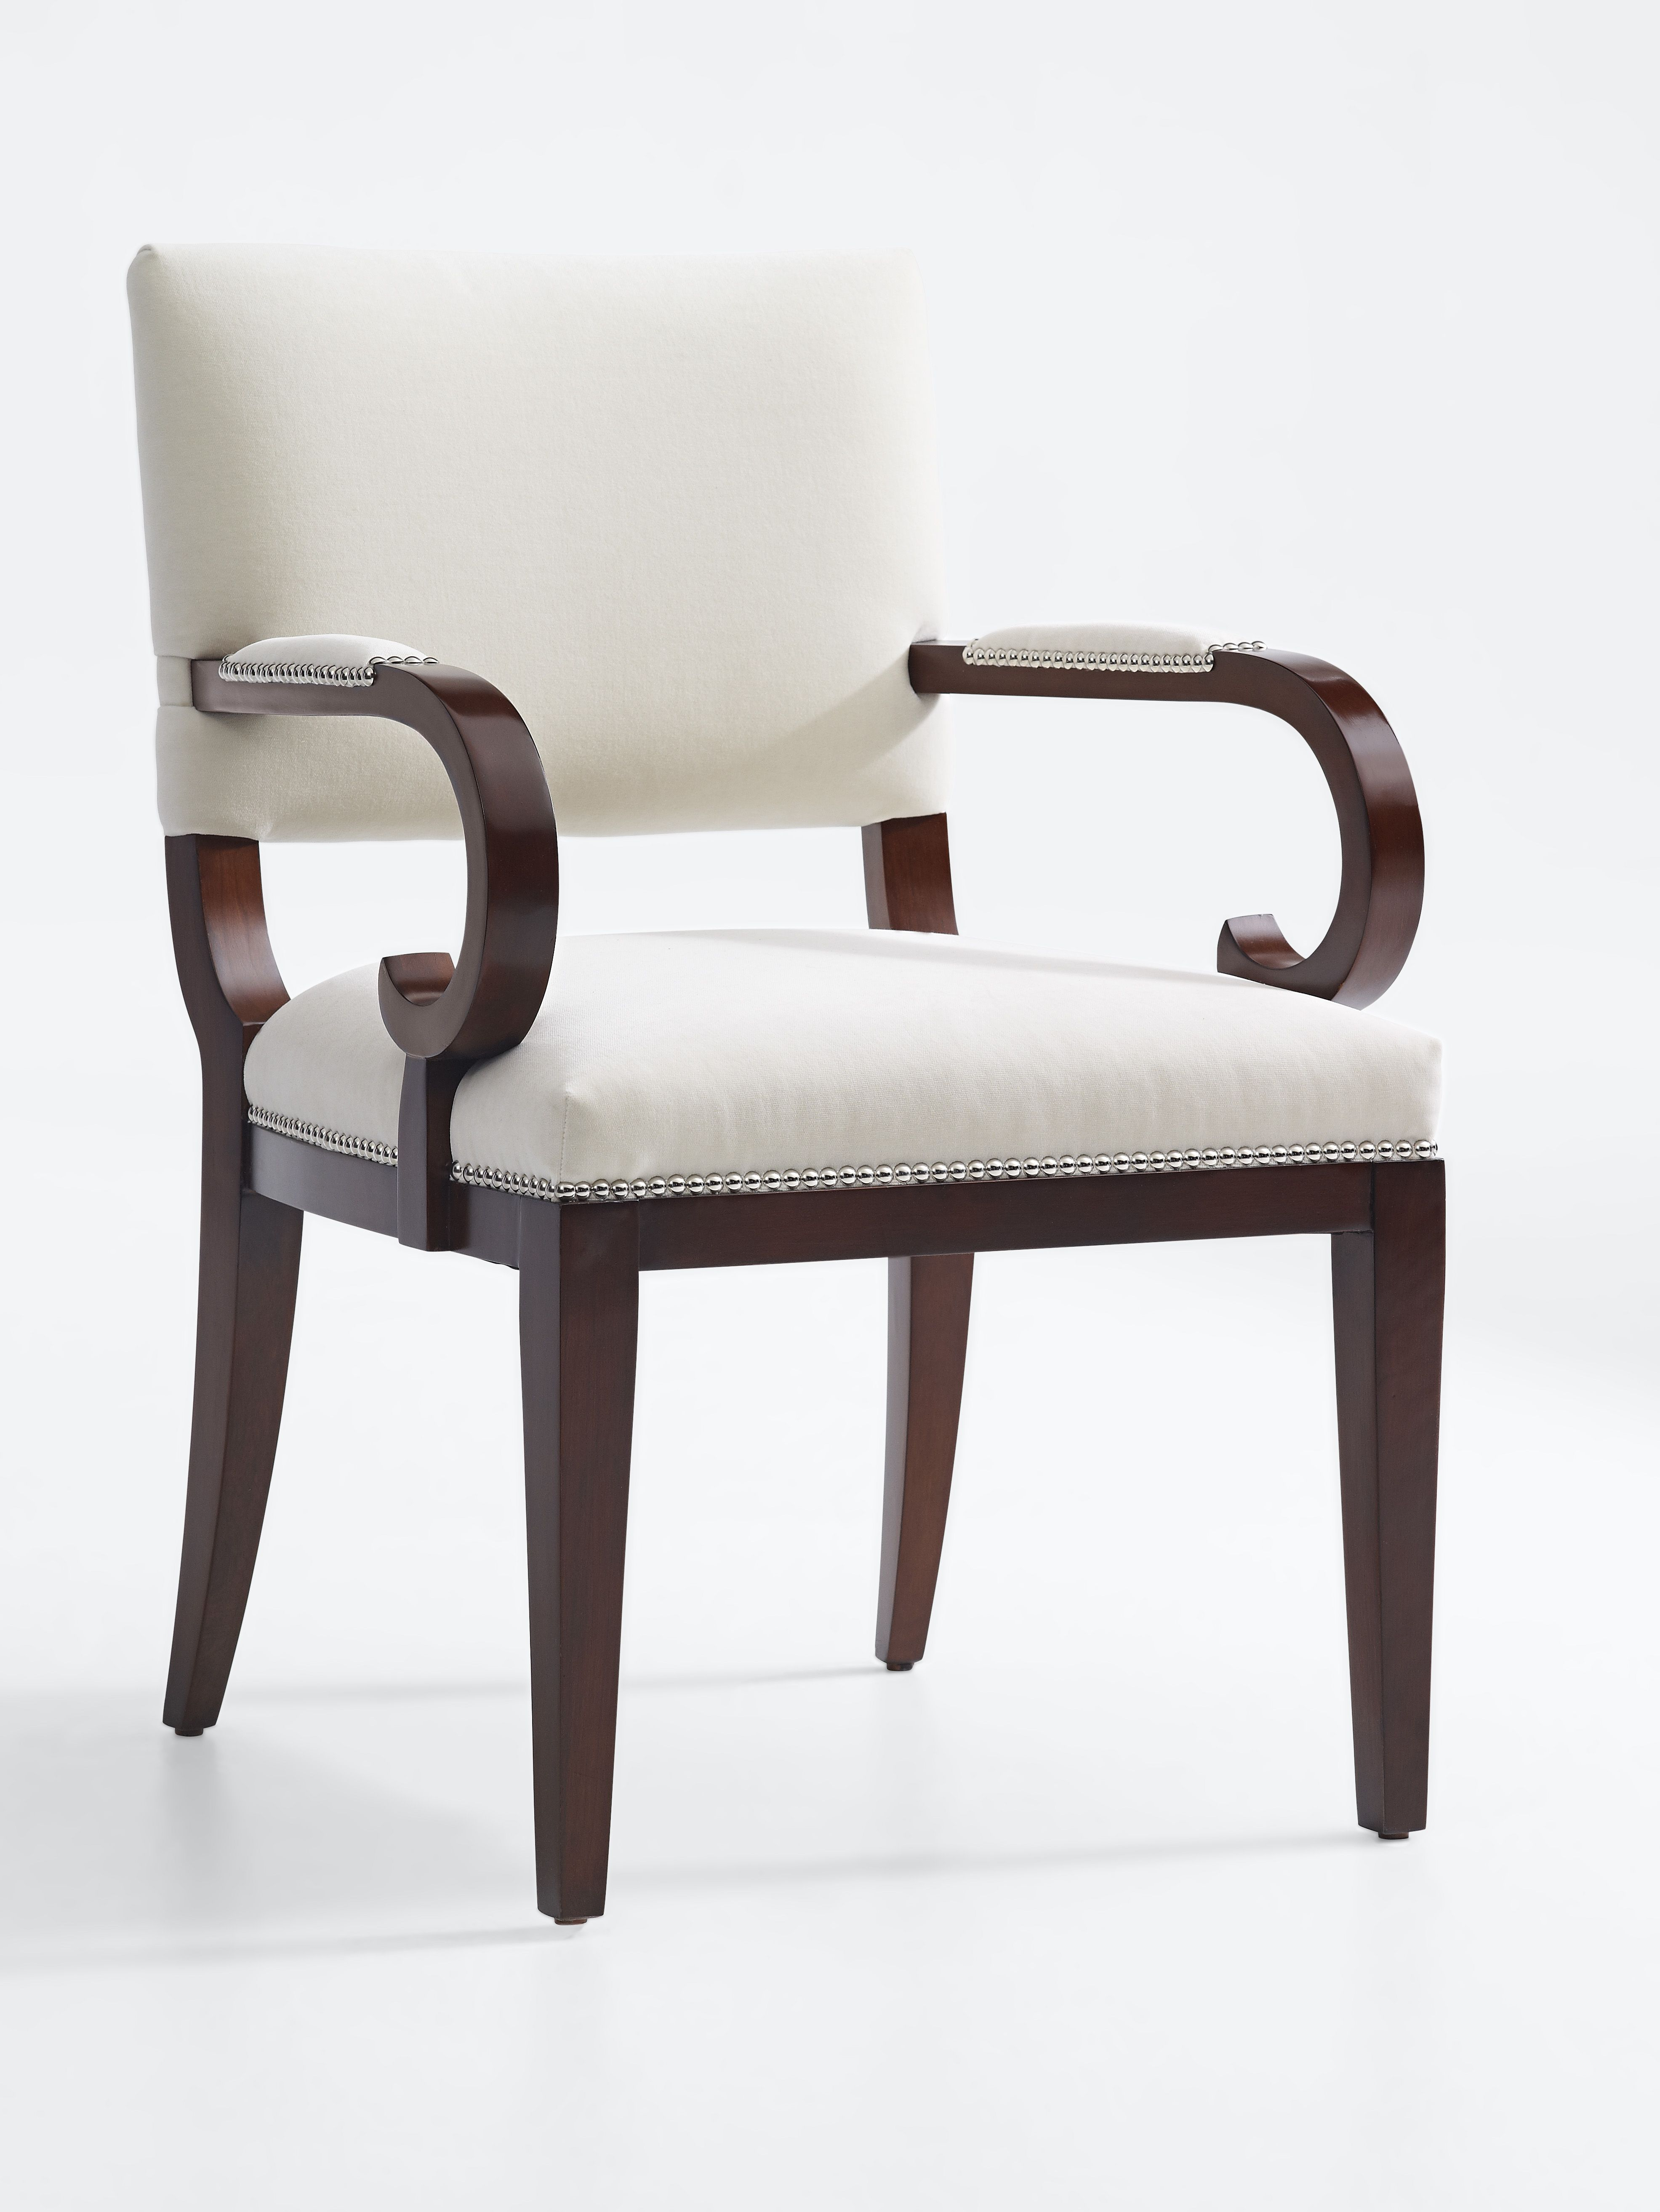 Ralph Lauren Home's Mayfair Dining Arm Chair | 【單椅】 | Pinterest Pertaining To Tate Arm Sofa Chairs (Photo 6 of 20)